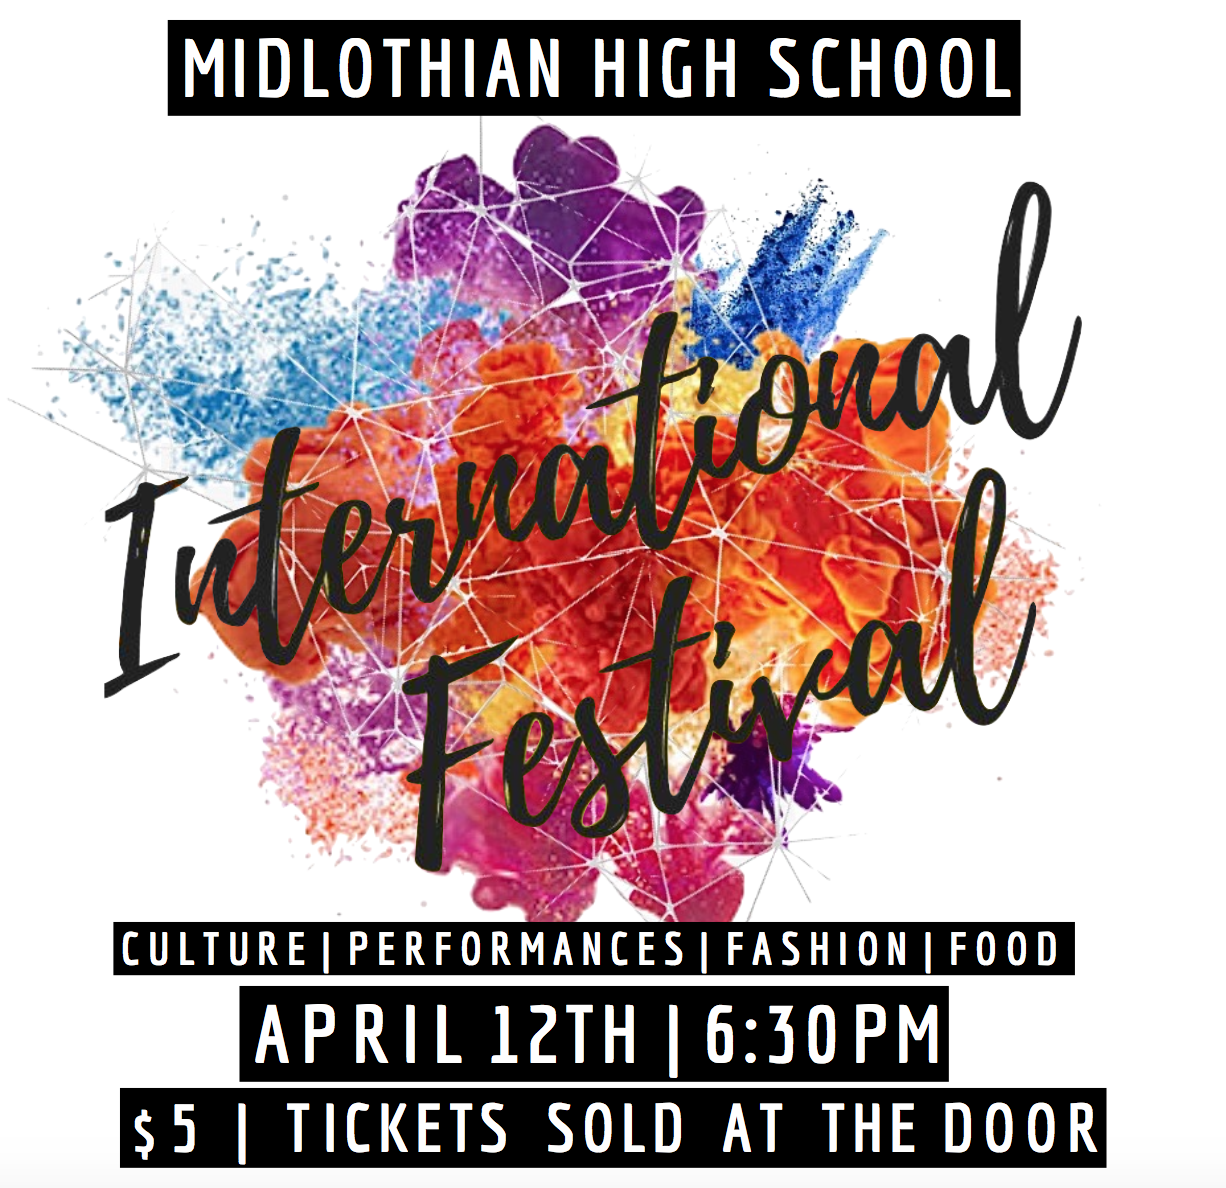 Midlothian High School's International Festival on April 12th at 6:30 PM